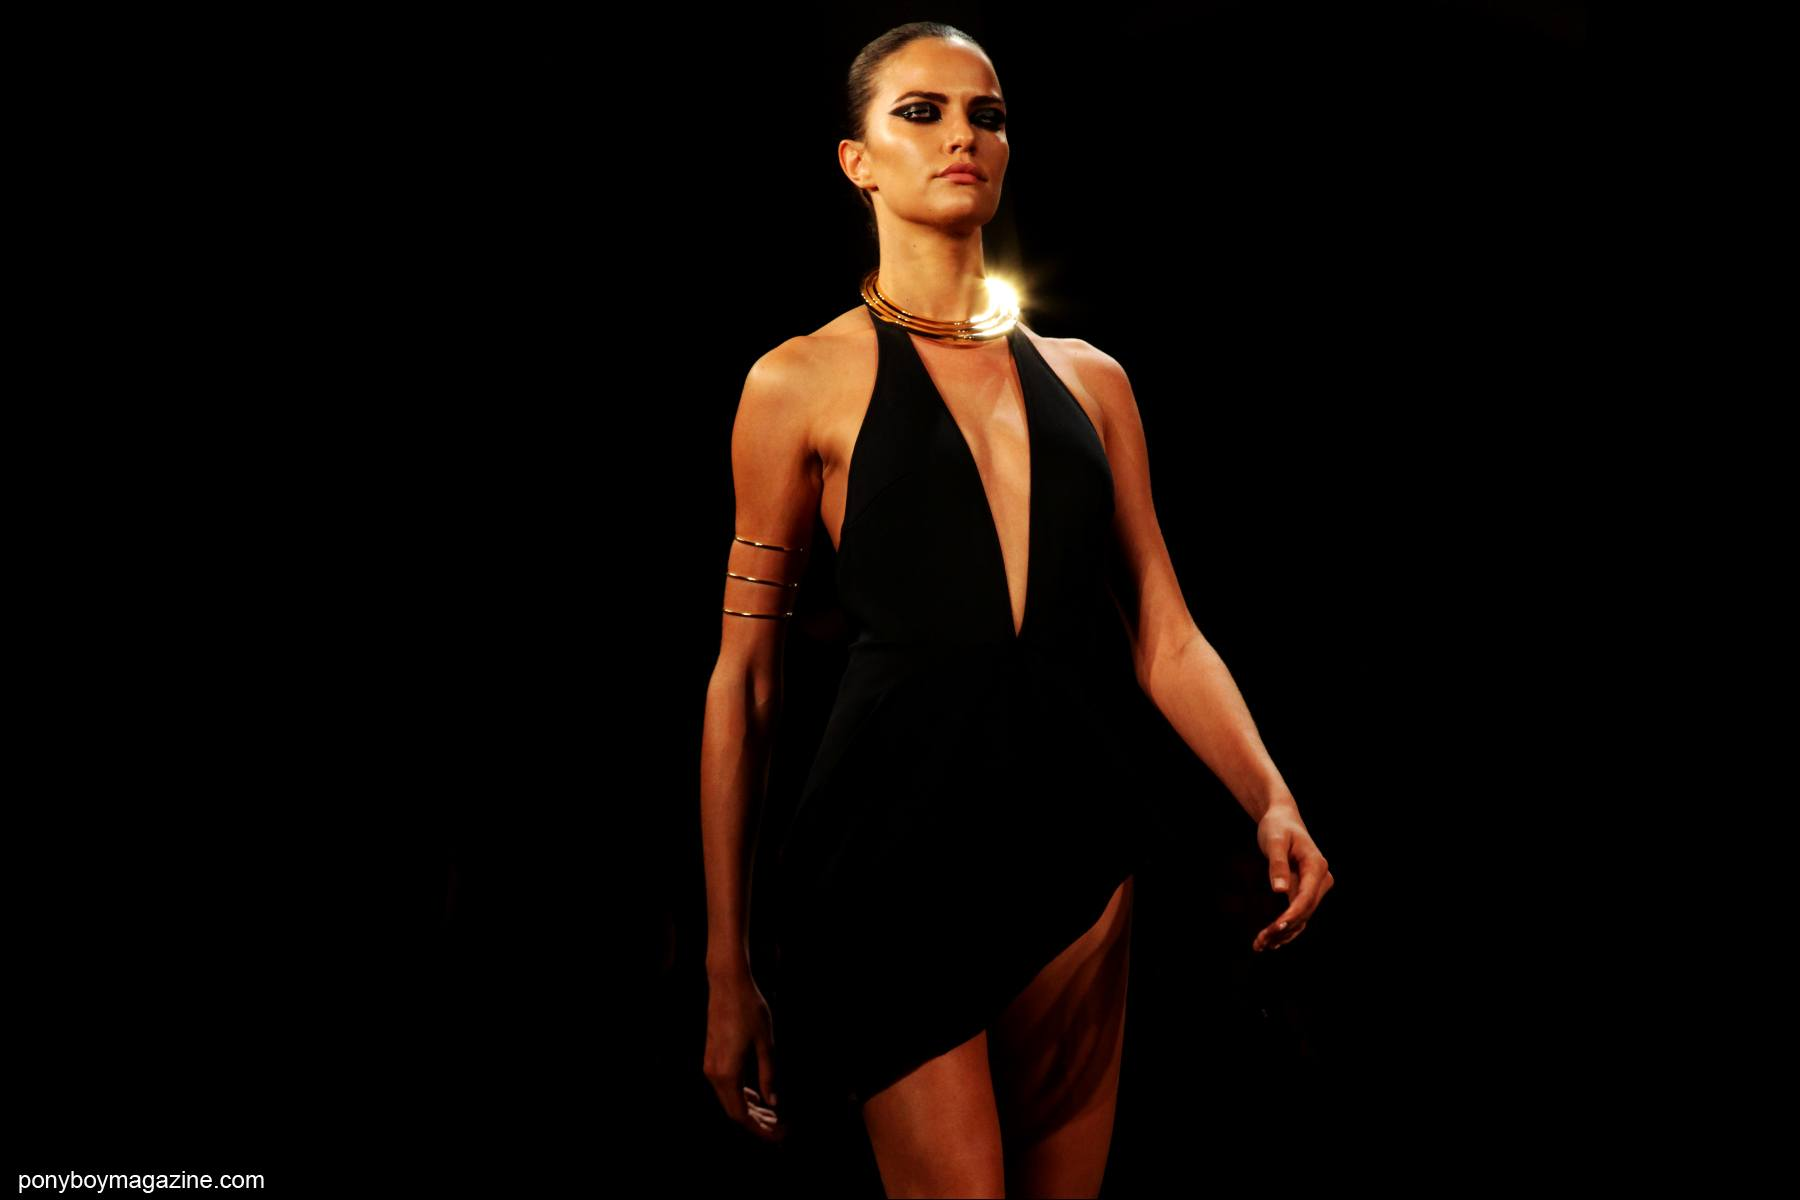 A model in a low-cut dress, on the runway for Cushnie et Ochs S/S15. Photo by Alexander Thompson for Ponyboy Magazine in New York City.